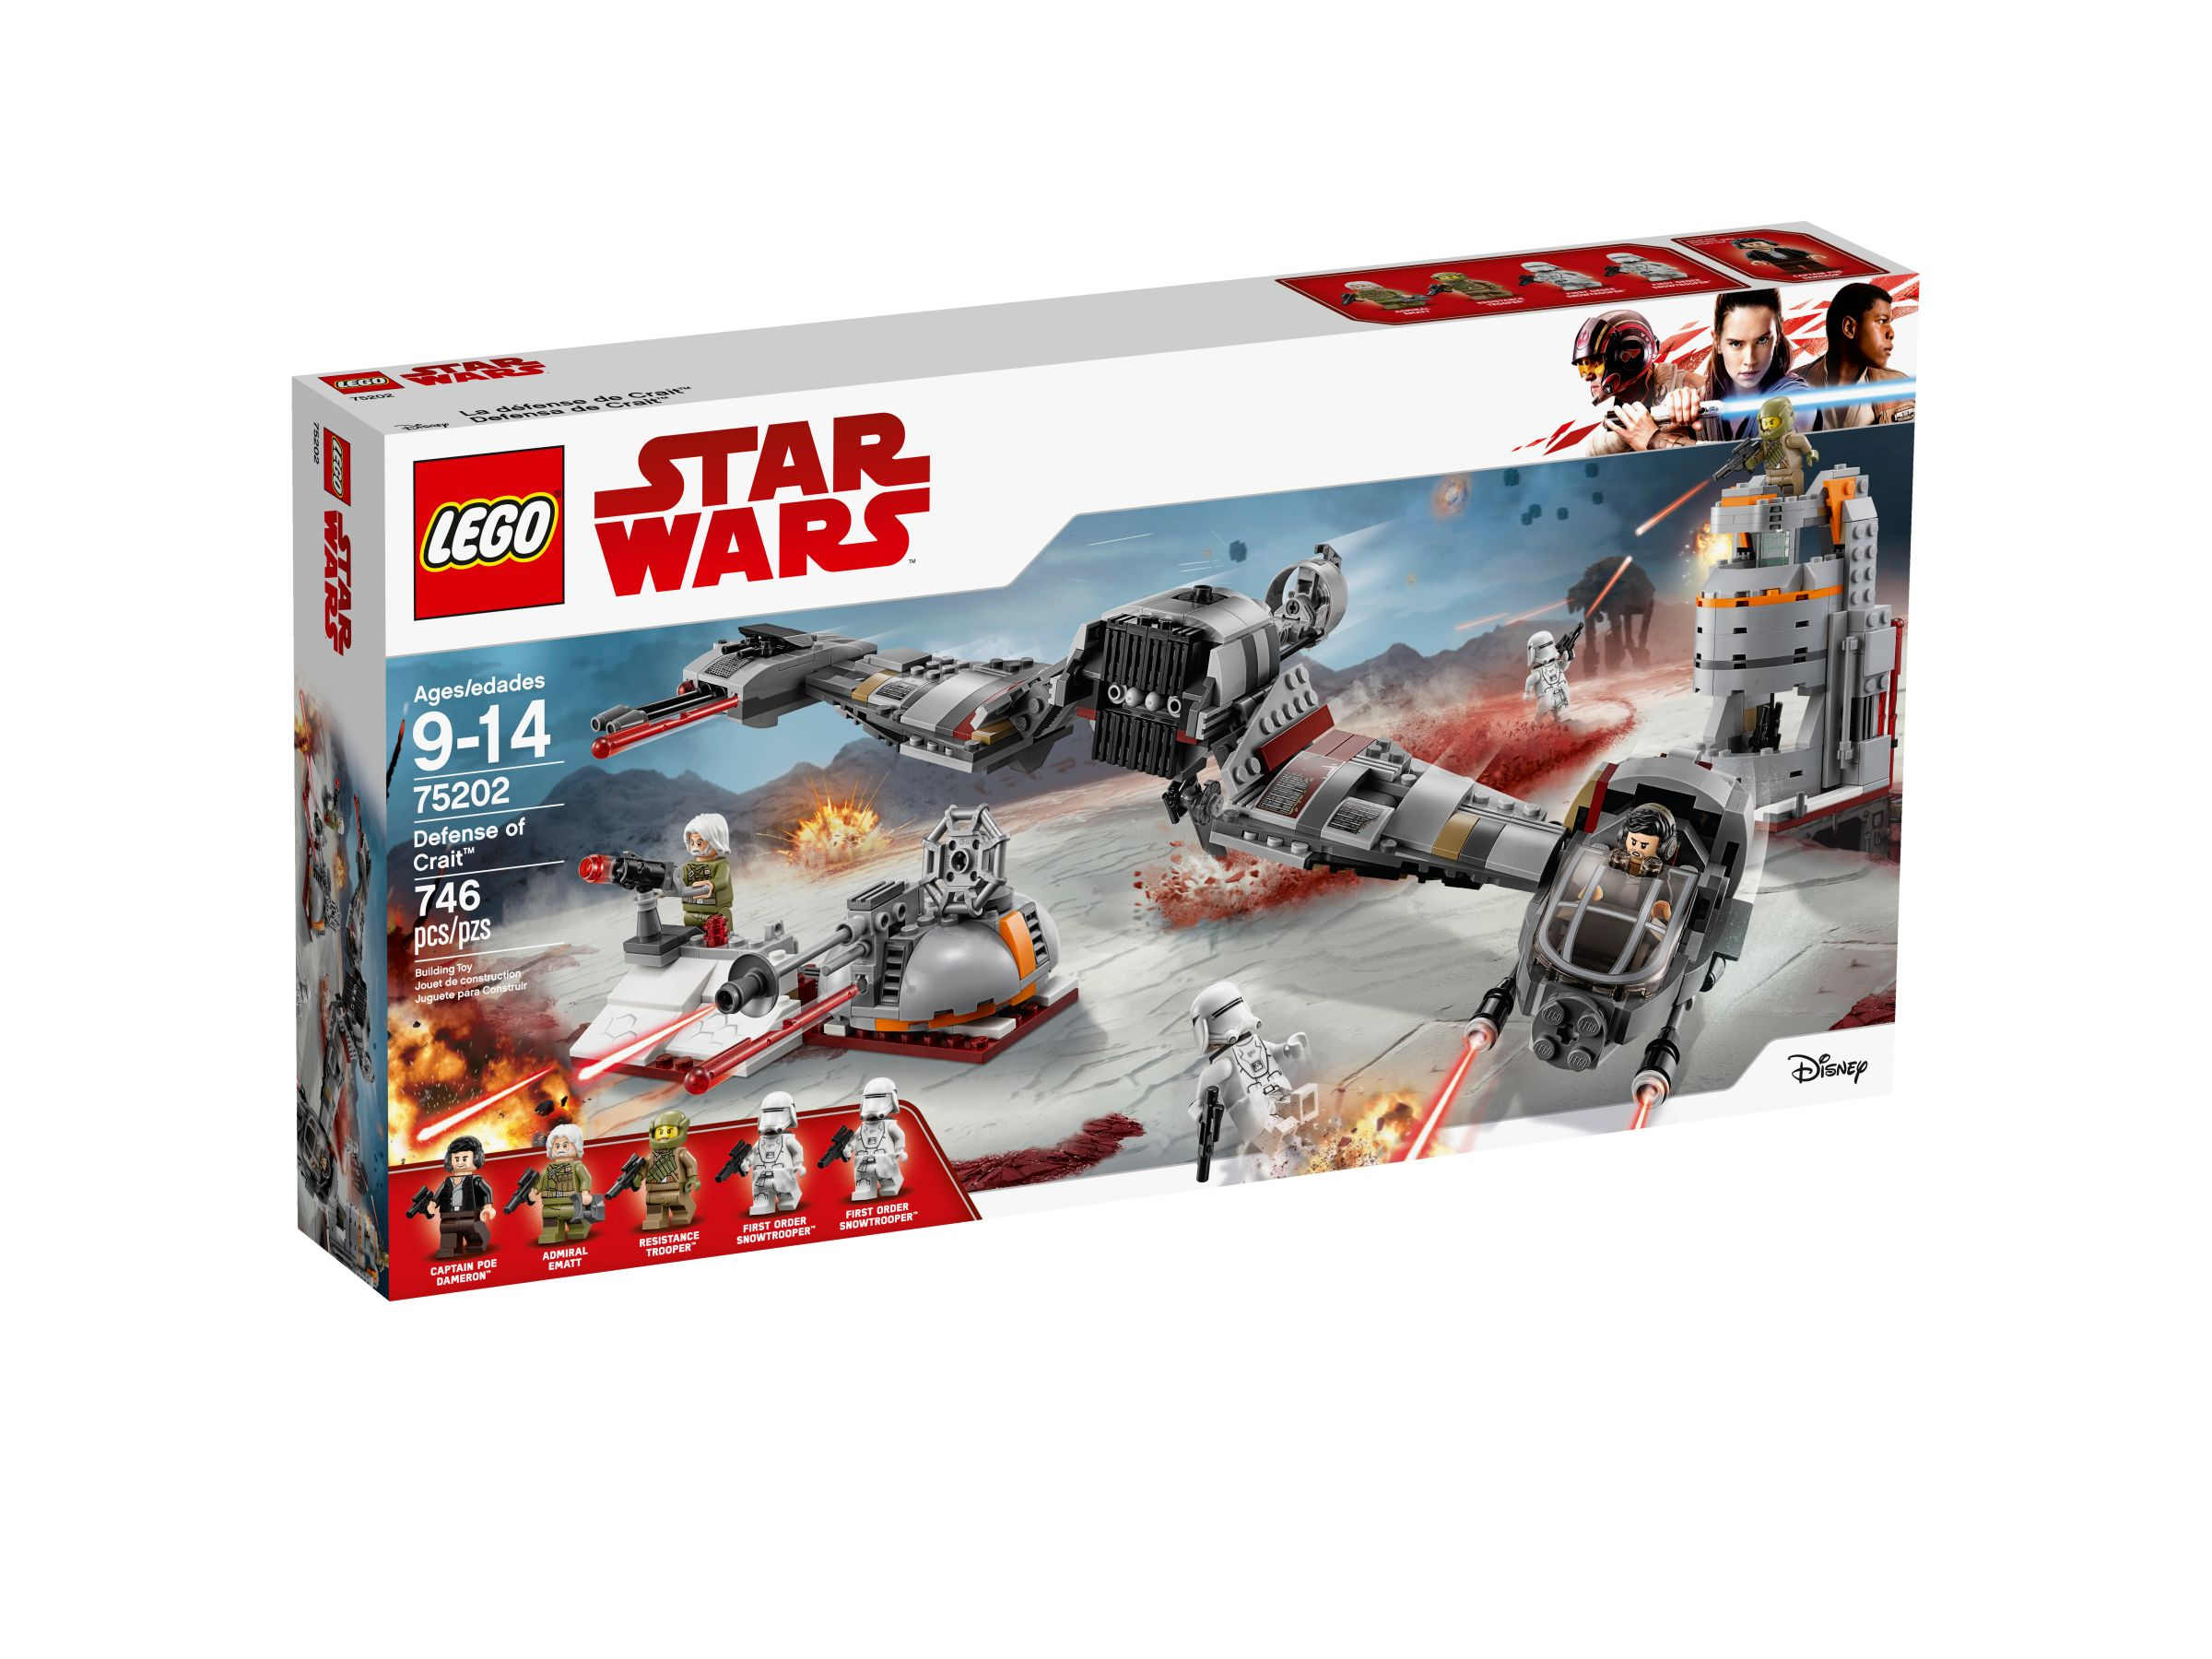 LEGO Star Wars 75202 Defense of Crait™ LEGO_75202_alt1.jpg